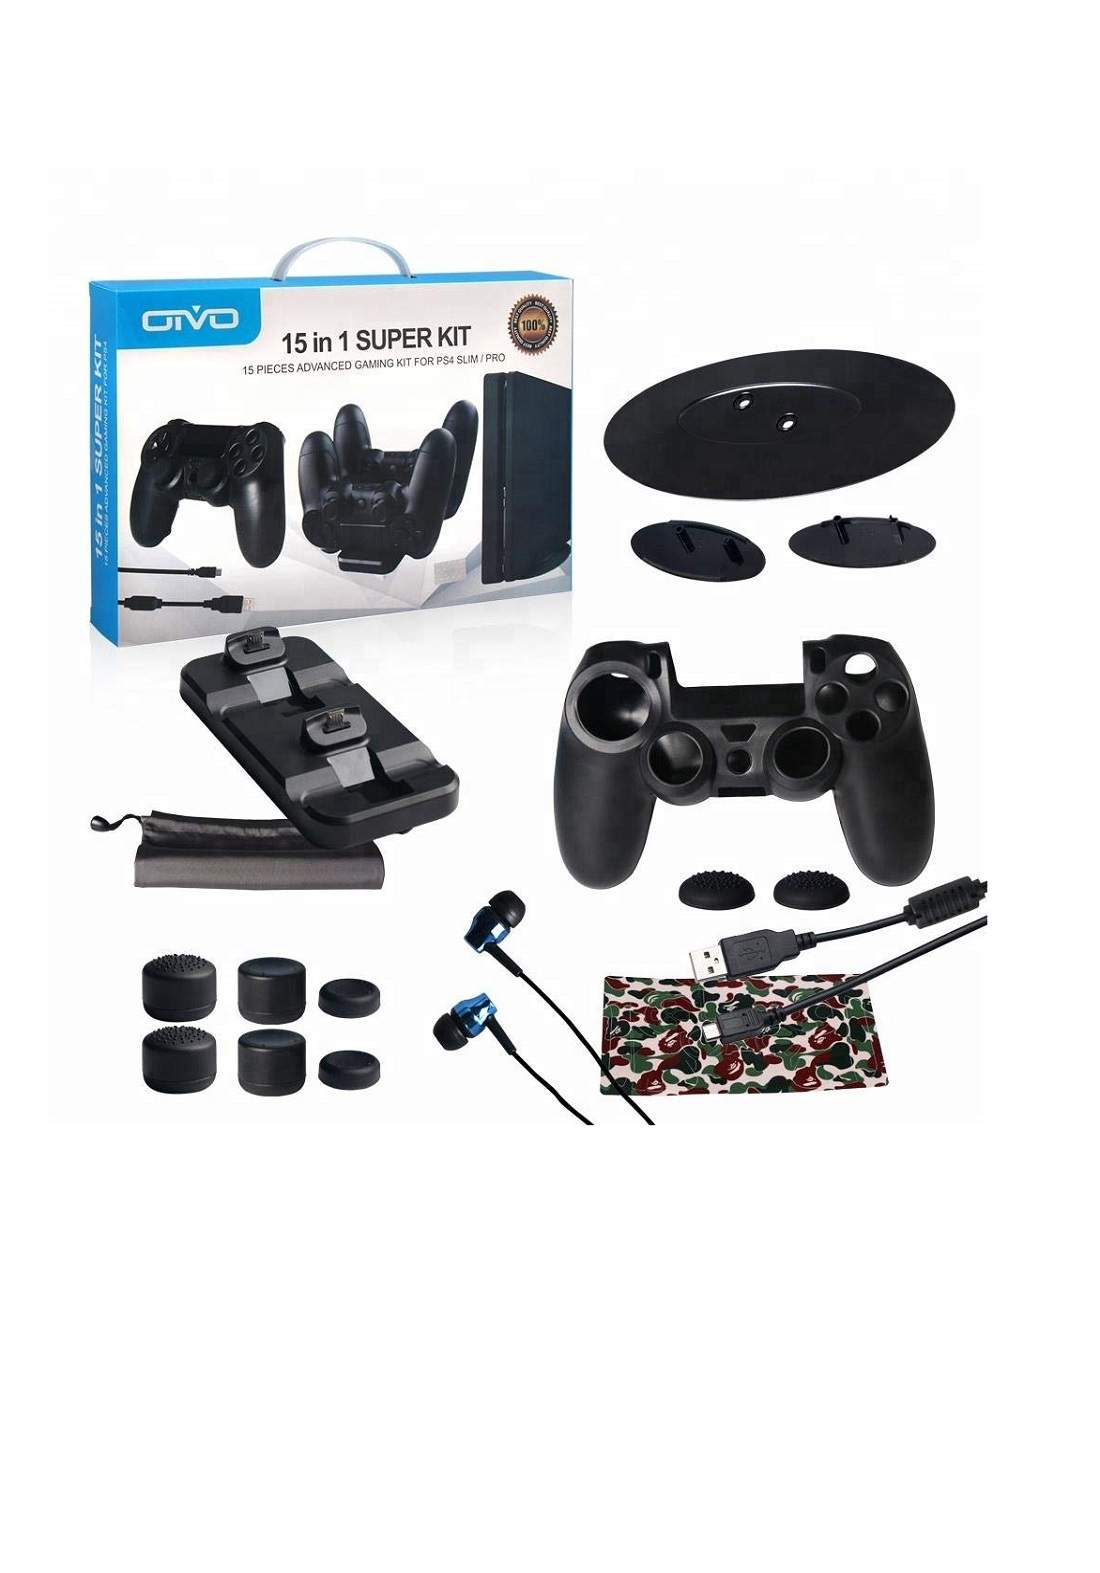 Oivo 15-in-1 Game Accessories Super Kit for PlayStation PS4  - Black